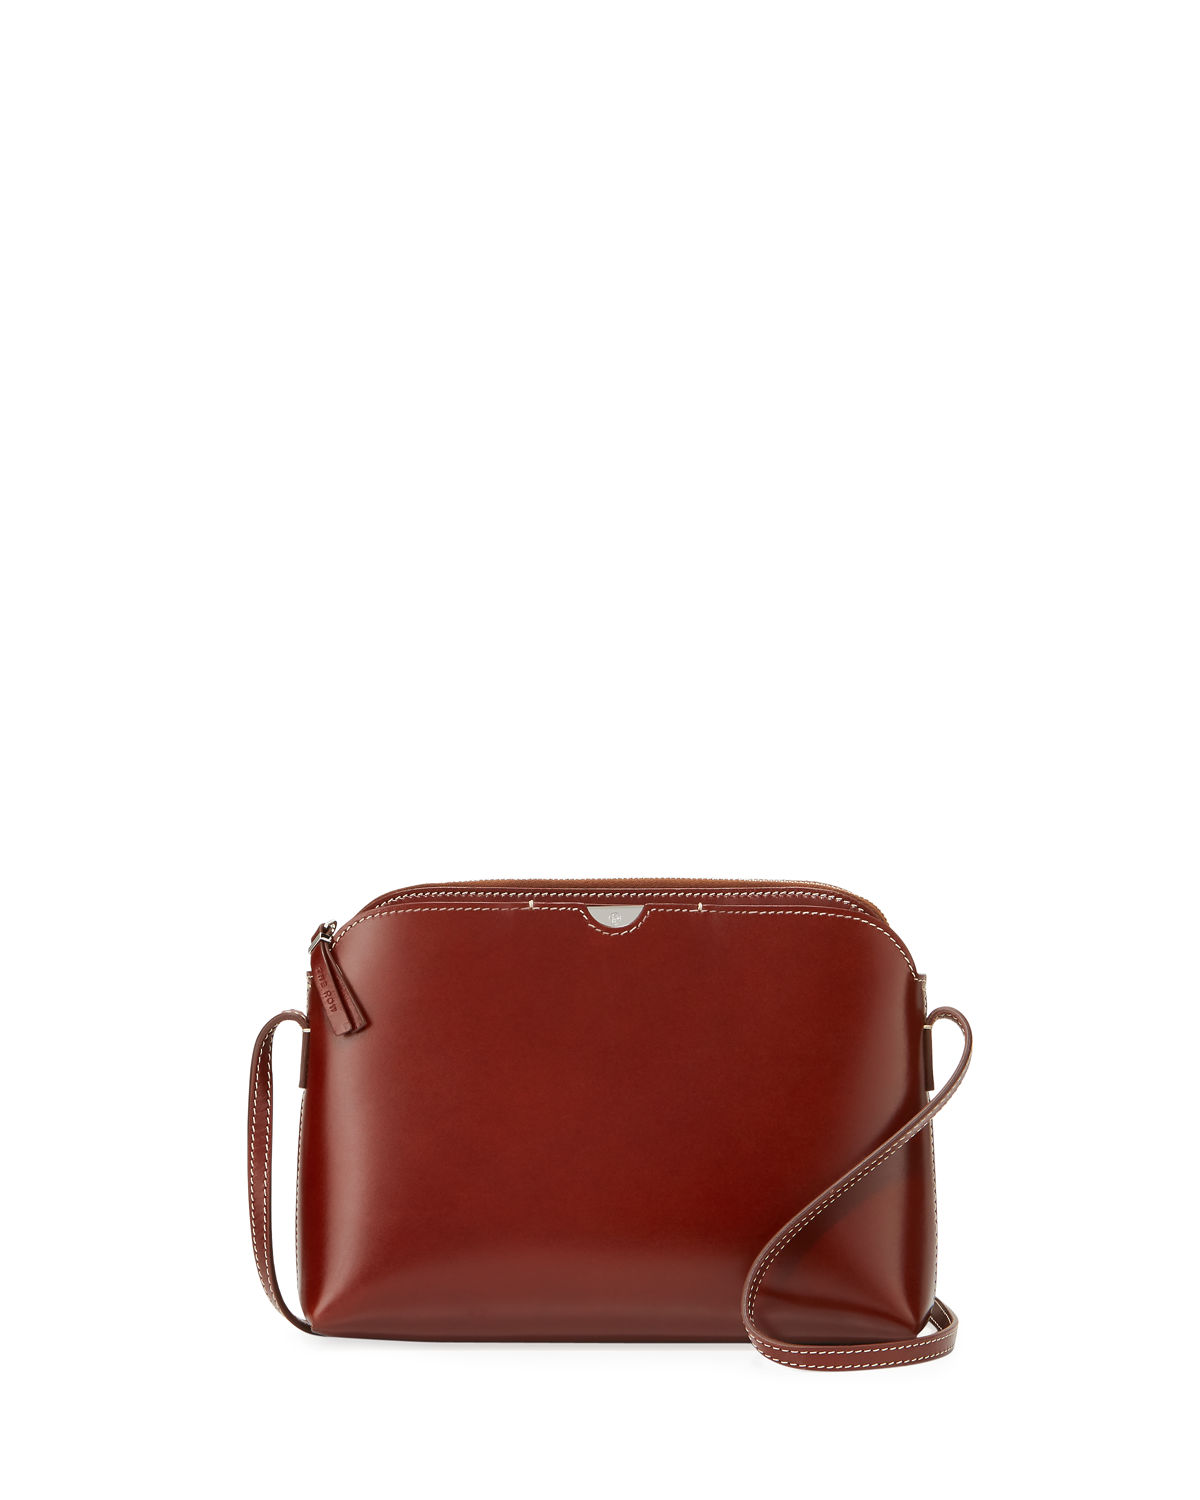 Multi Pouch Leather Shoulder Bag